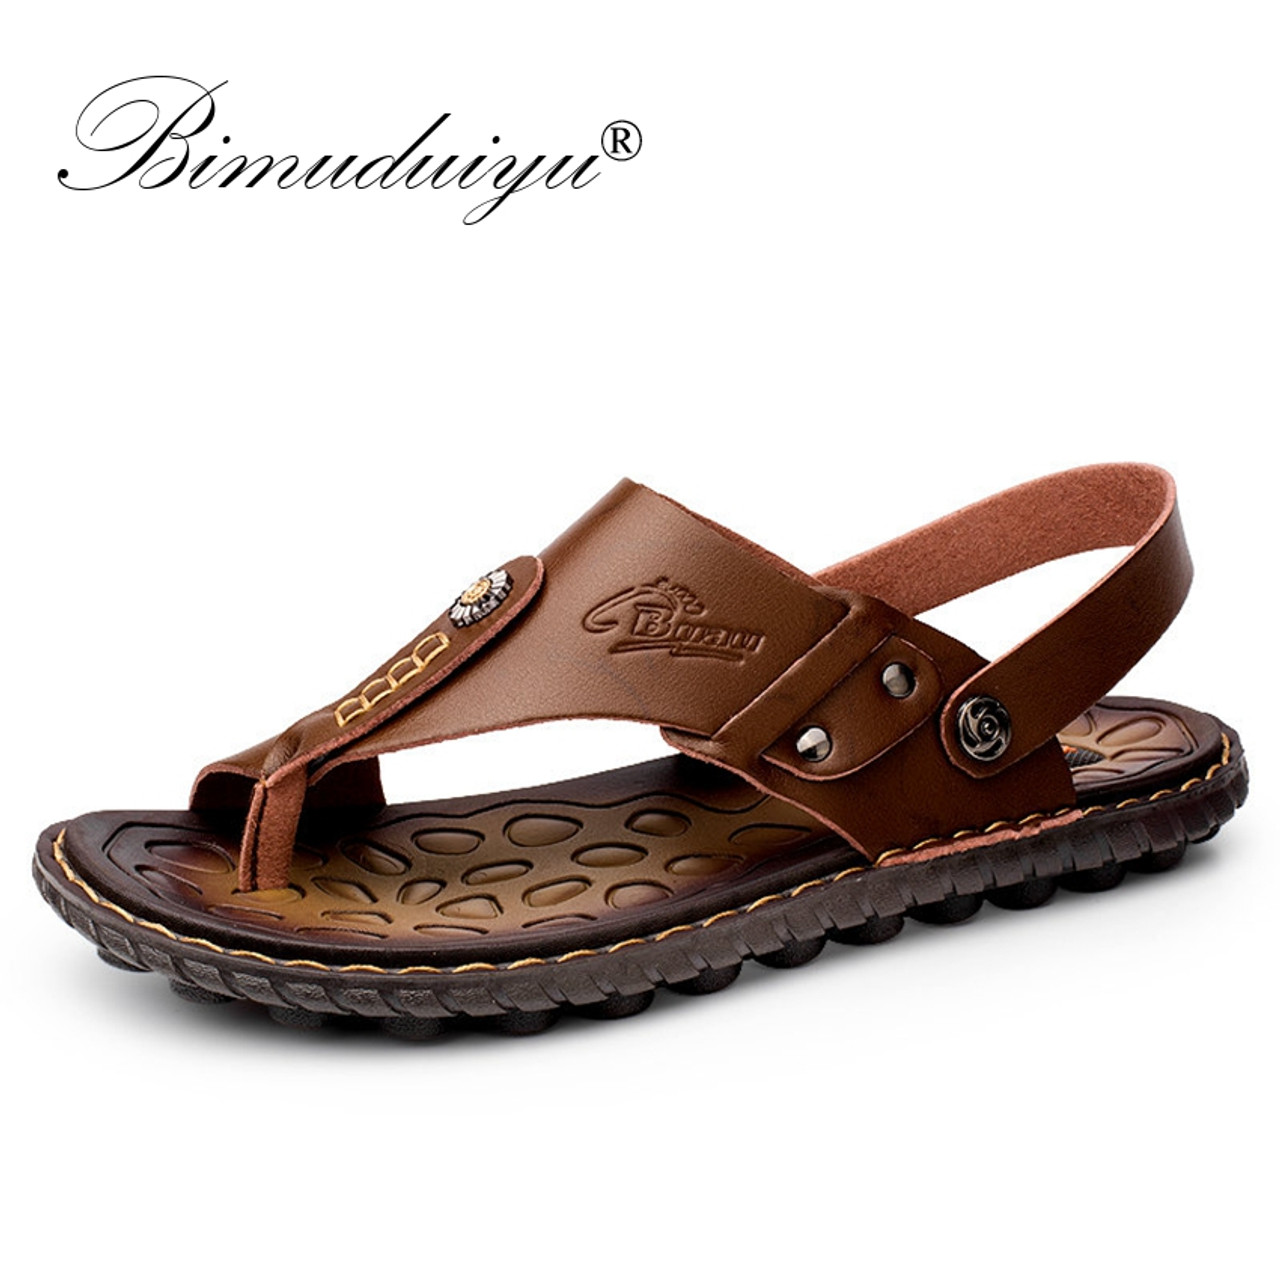 a7b1aed195fbd BIMUDUIYU Brand 2018 Beach Shoes Fashion Men Sandals And Slippers Two In  One Casual Shoes Leather ...